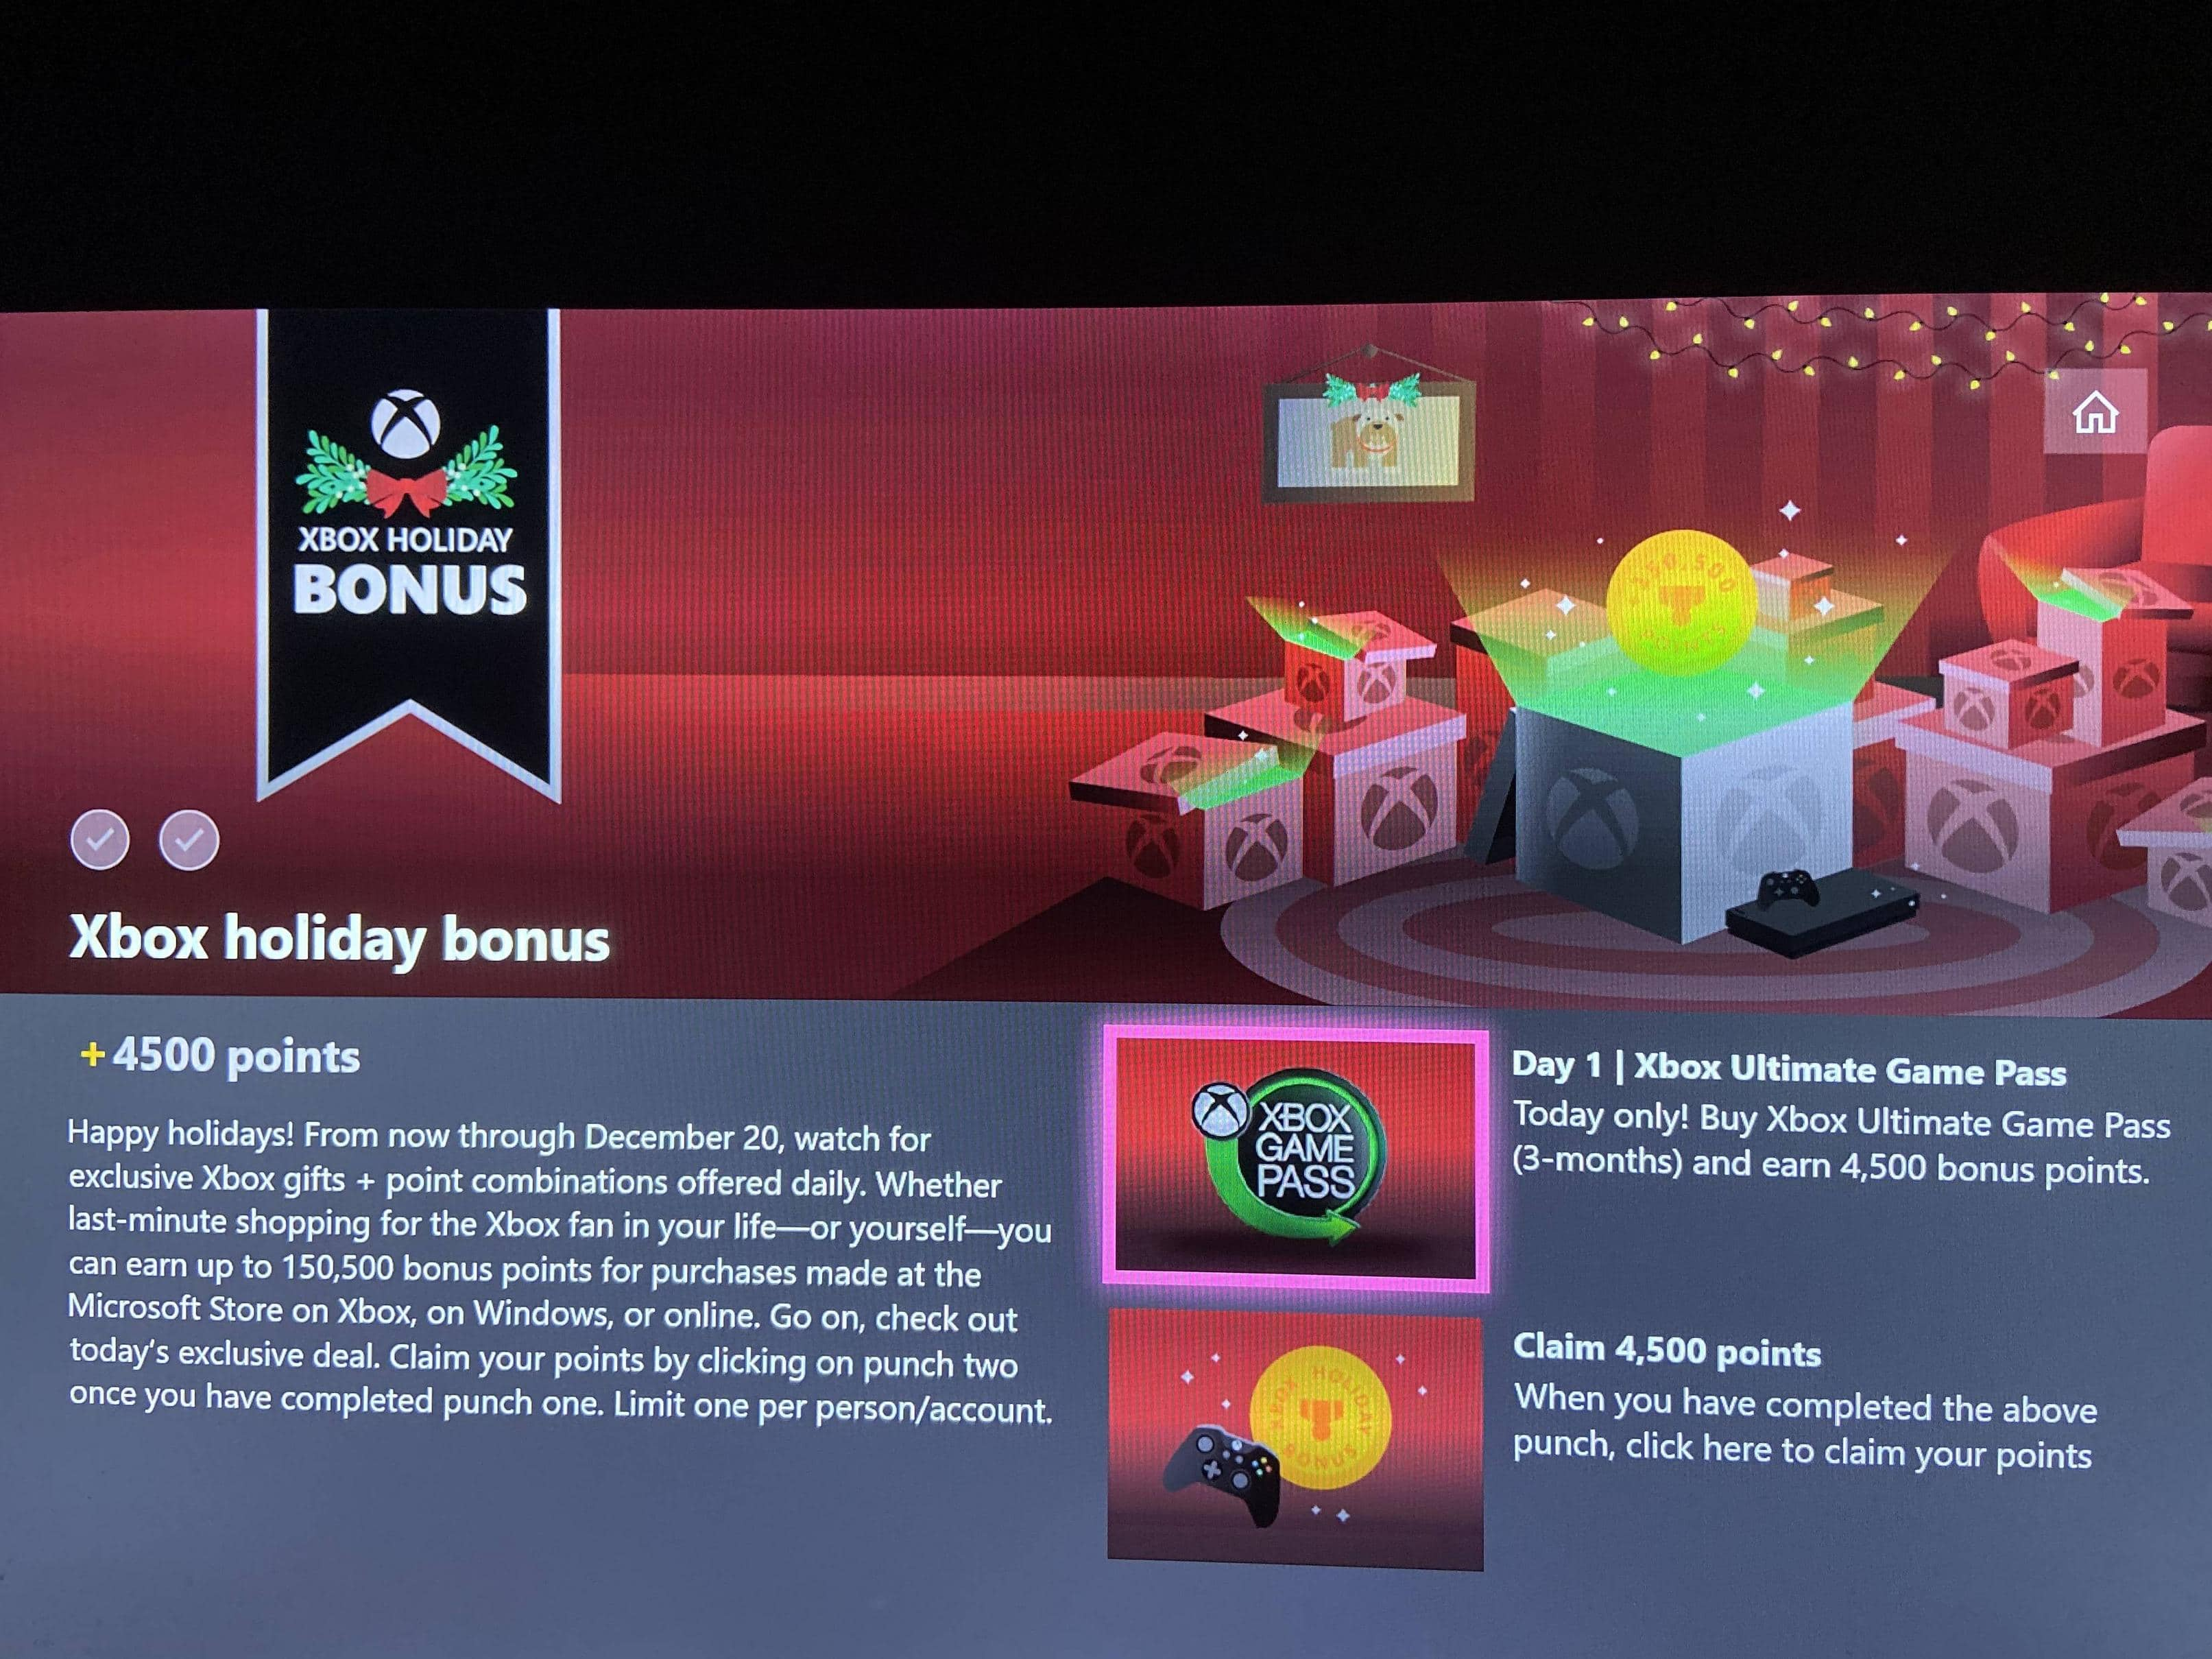 Purchase 3 Months Xbox Game Pass Ultimate for $1 (YMMV) and get 4500 Microsoft Points